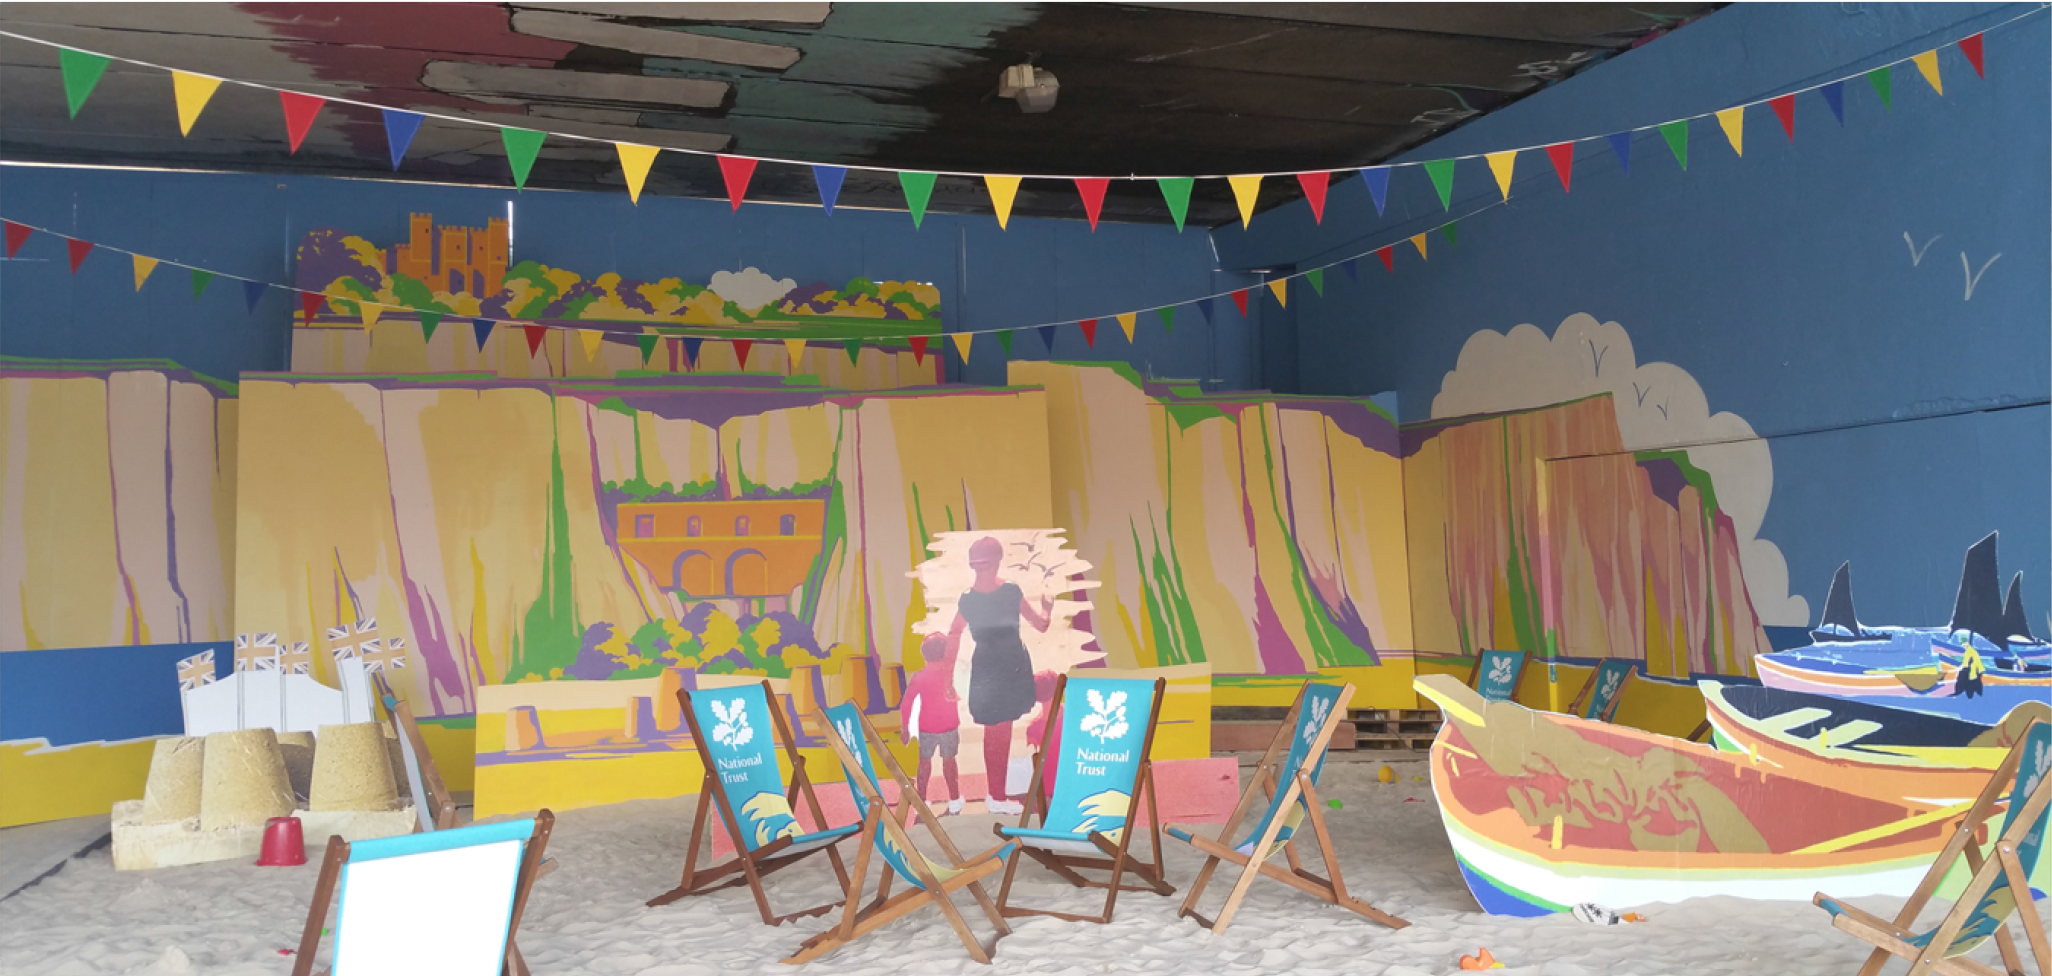 Urban beach for National Trust, at InTransit festival, under Westway London, 2015